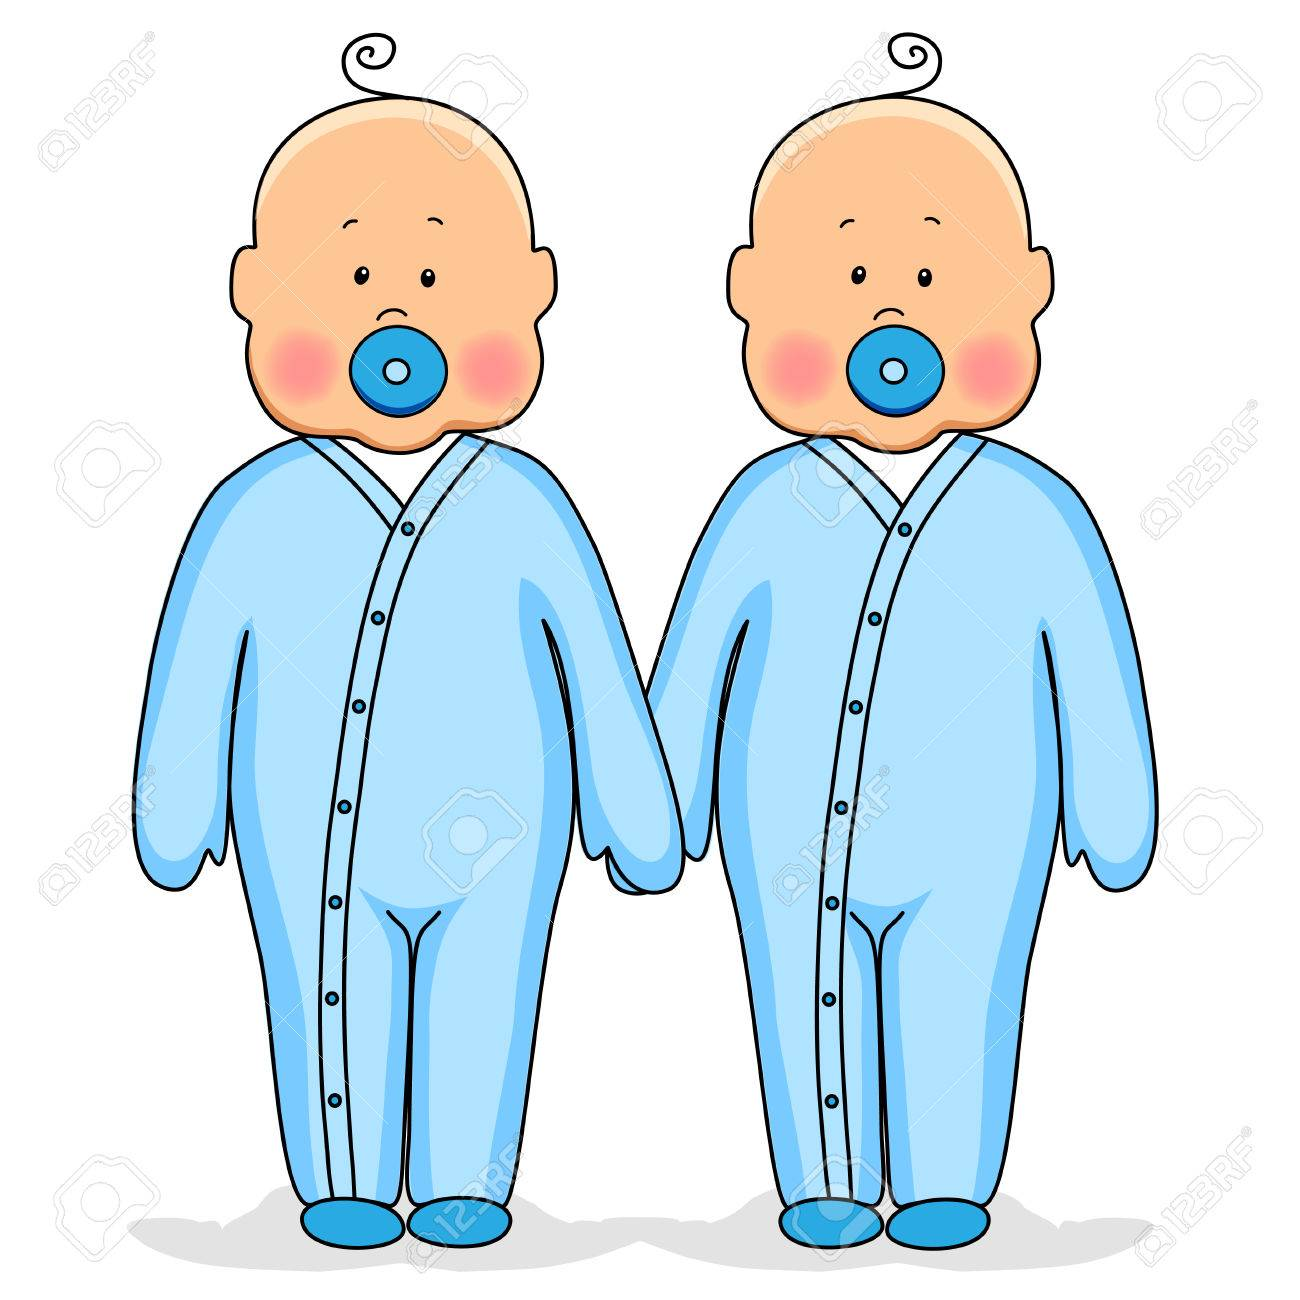 Twins as cute babies holding hands - 77975230